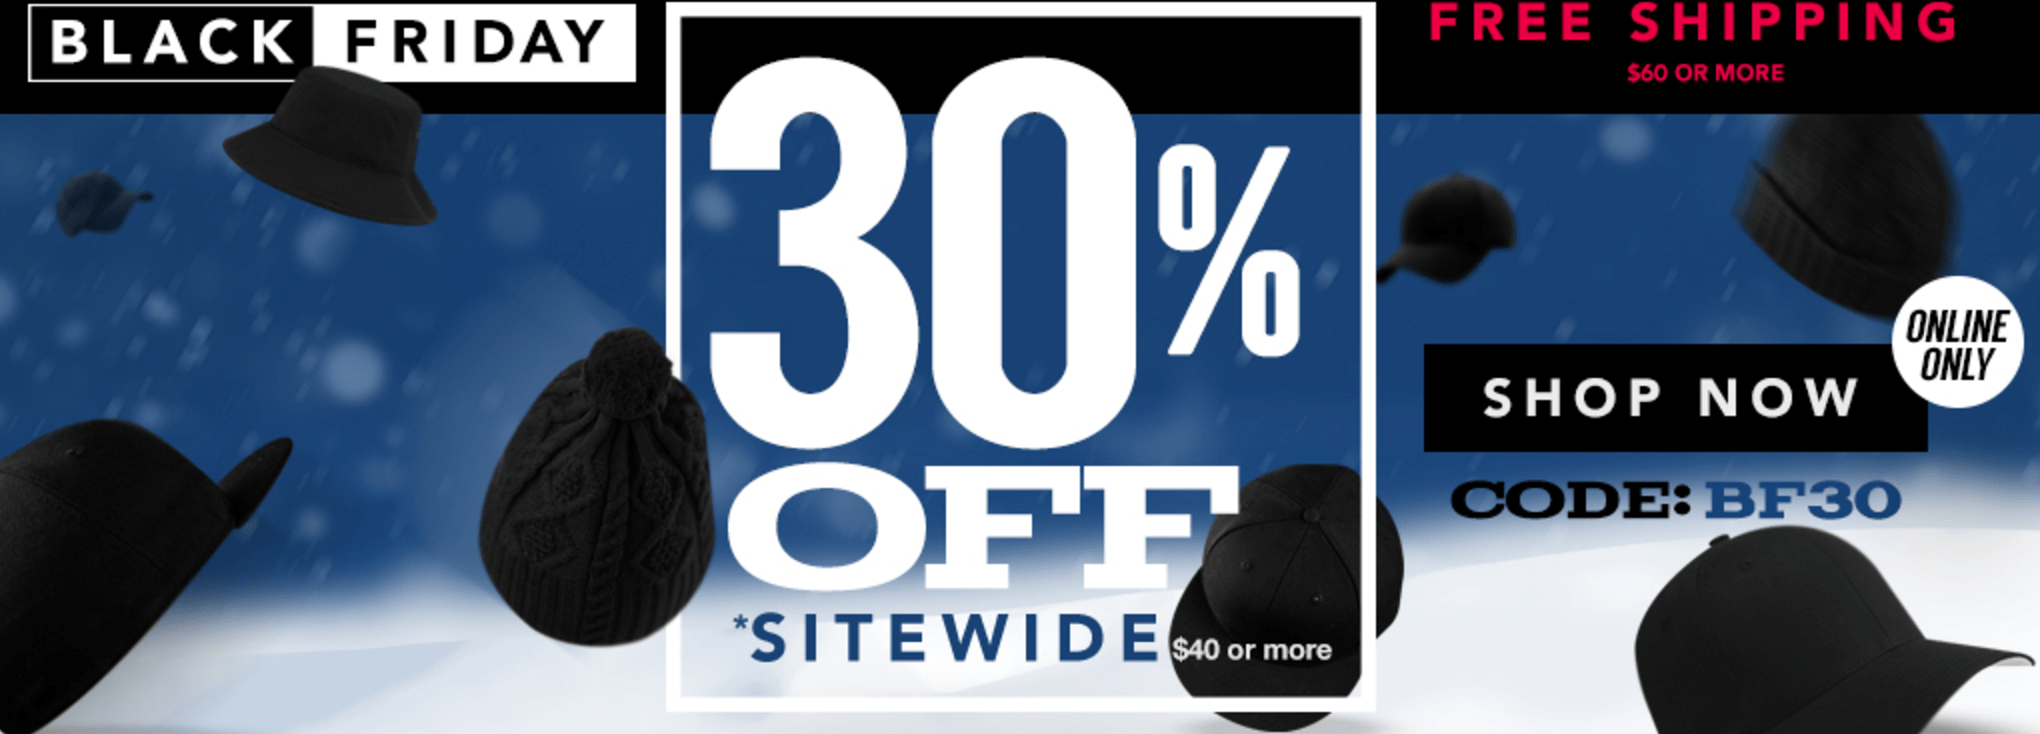 Lids Canada Black Friday Deals: Save 30% Off $40 + 25% Off Nike + More!